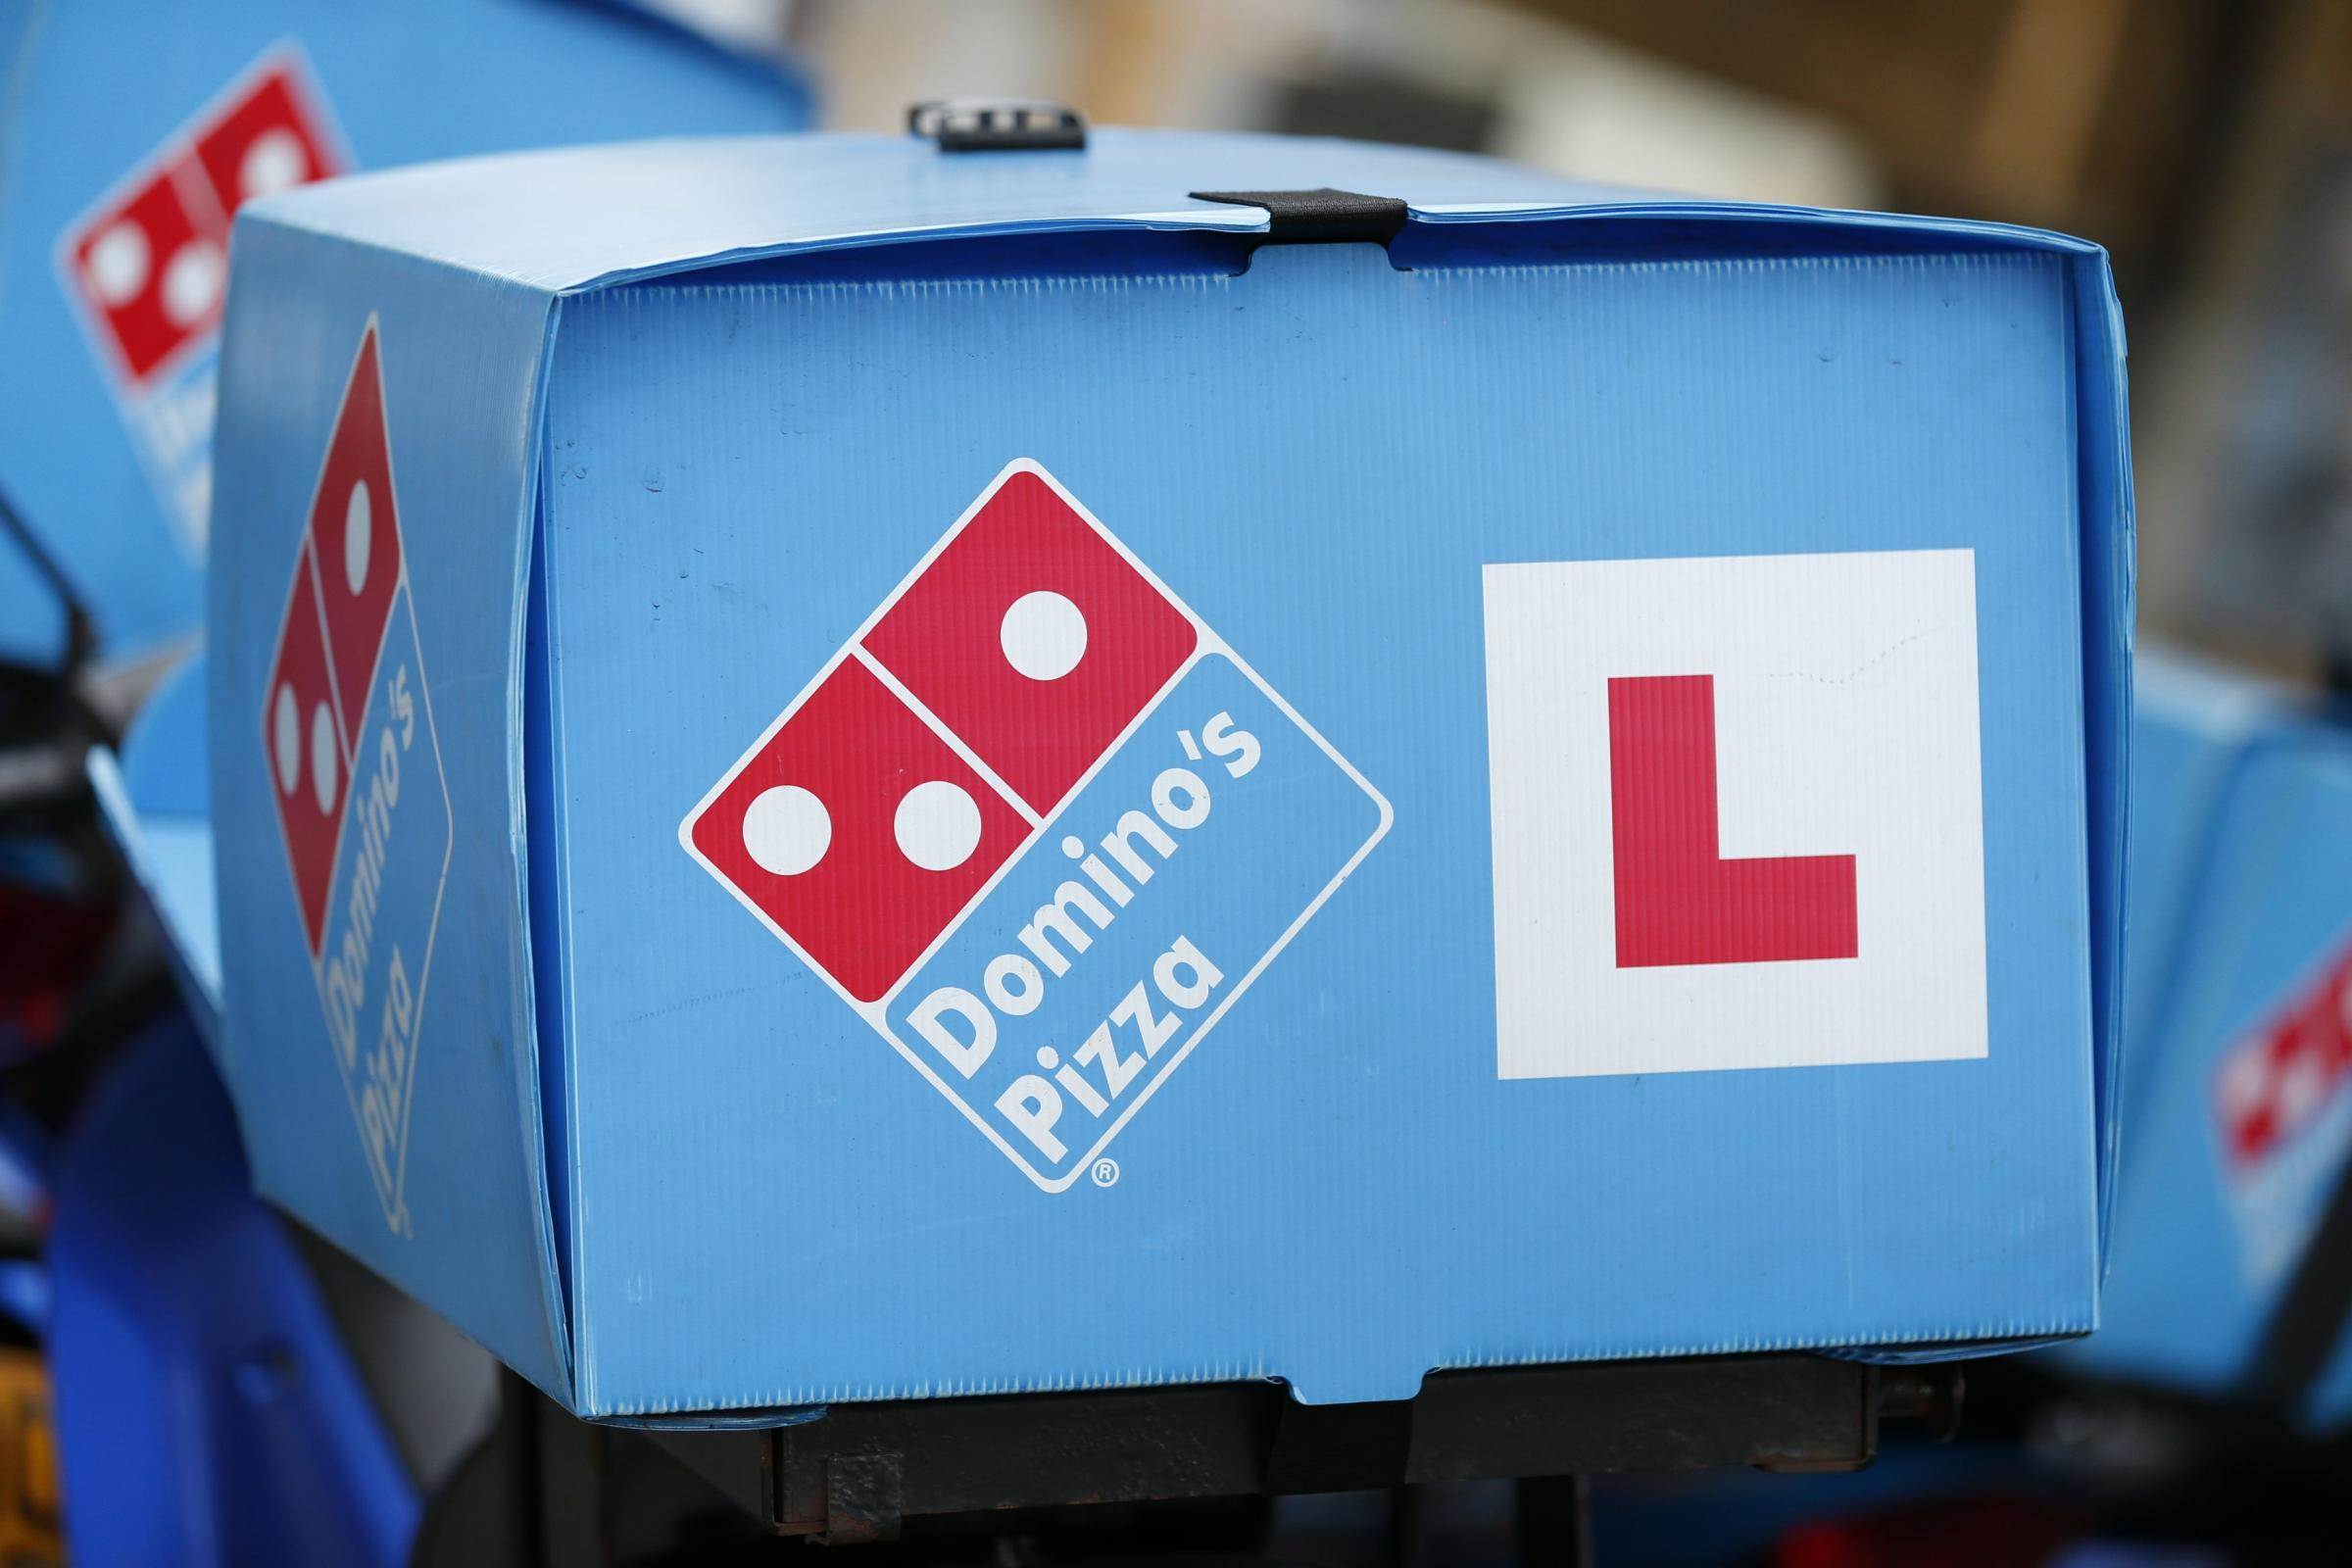 Domino's Pizza delivery motorcycle